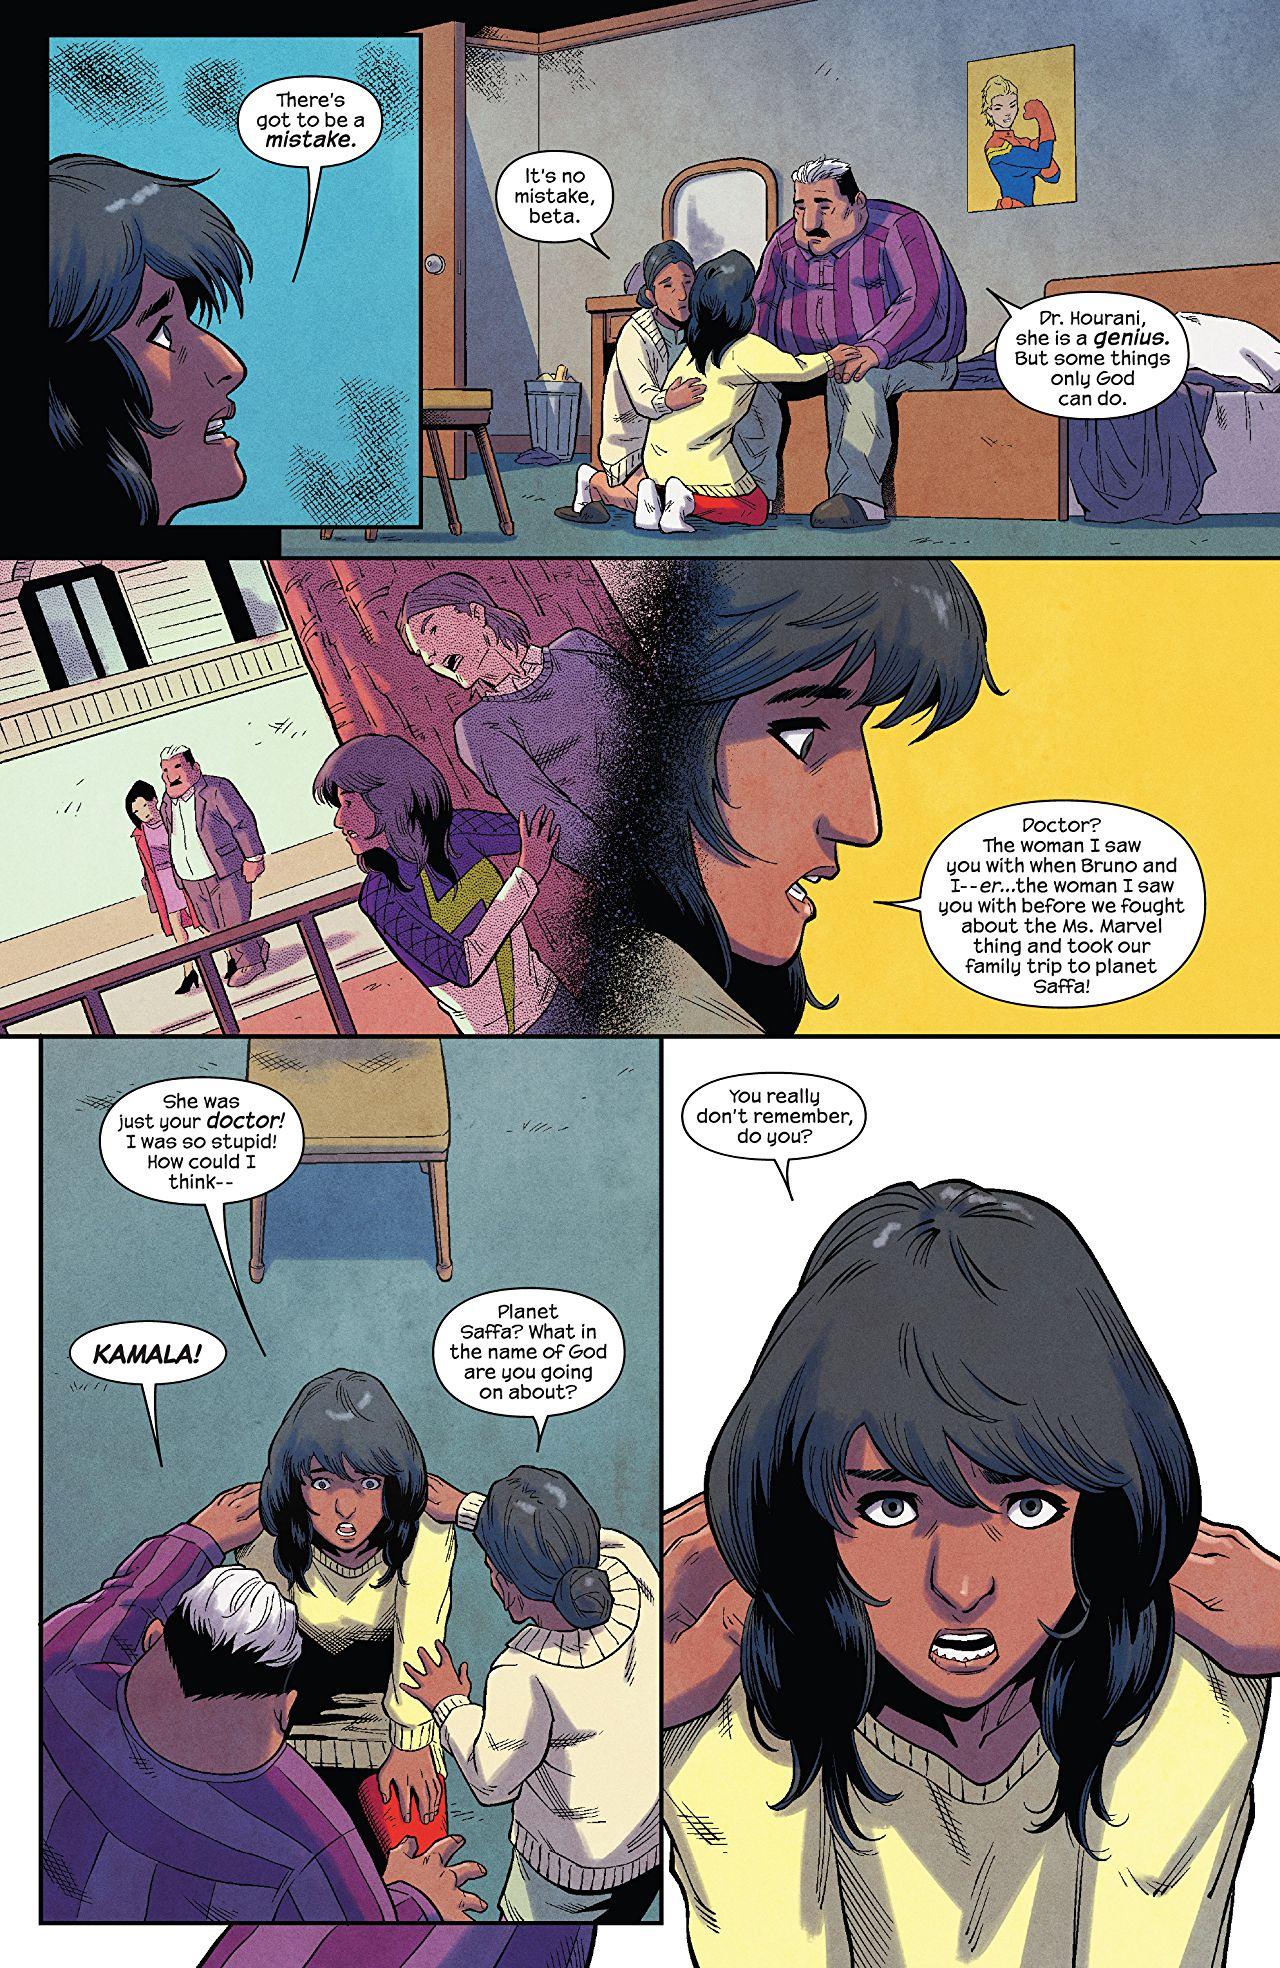 The Magnificent Ms Marvel #6: Page 3, Kamala deduces that her father is not a cheater.